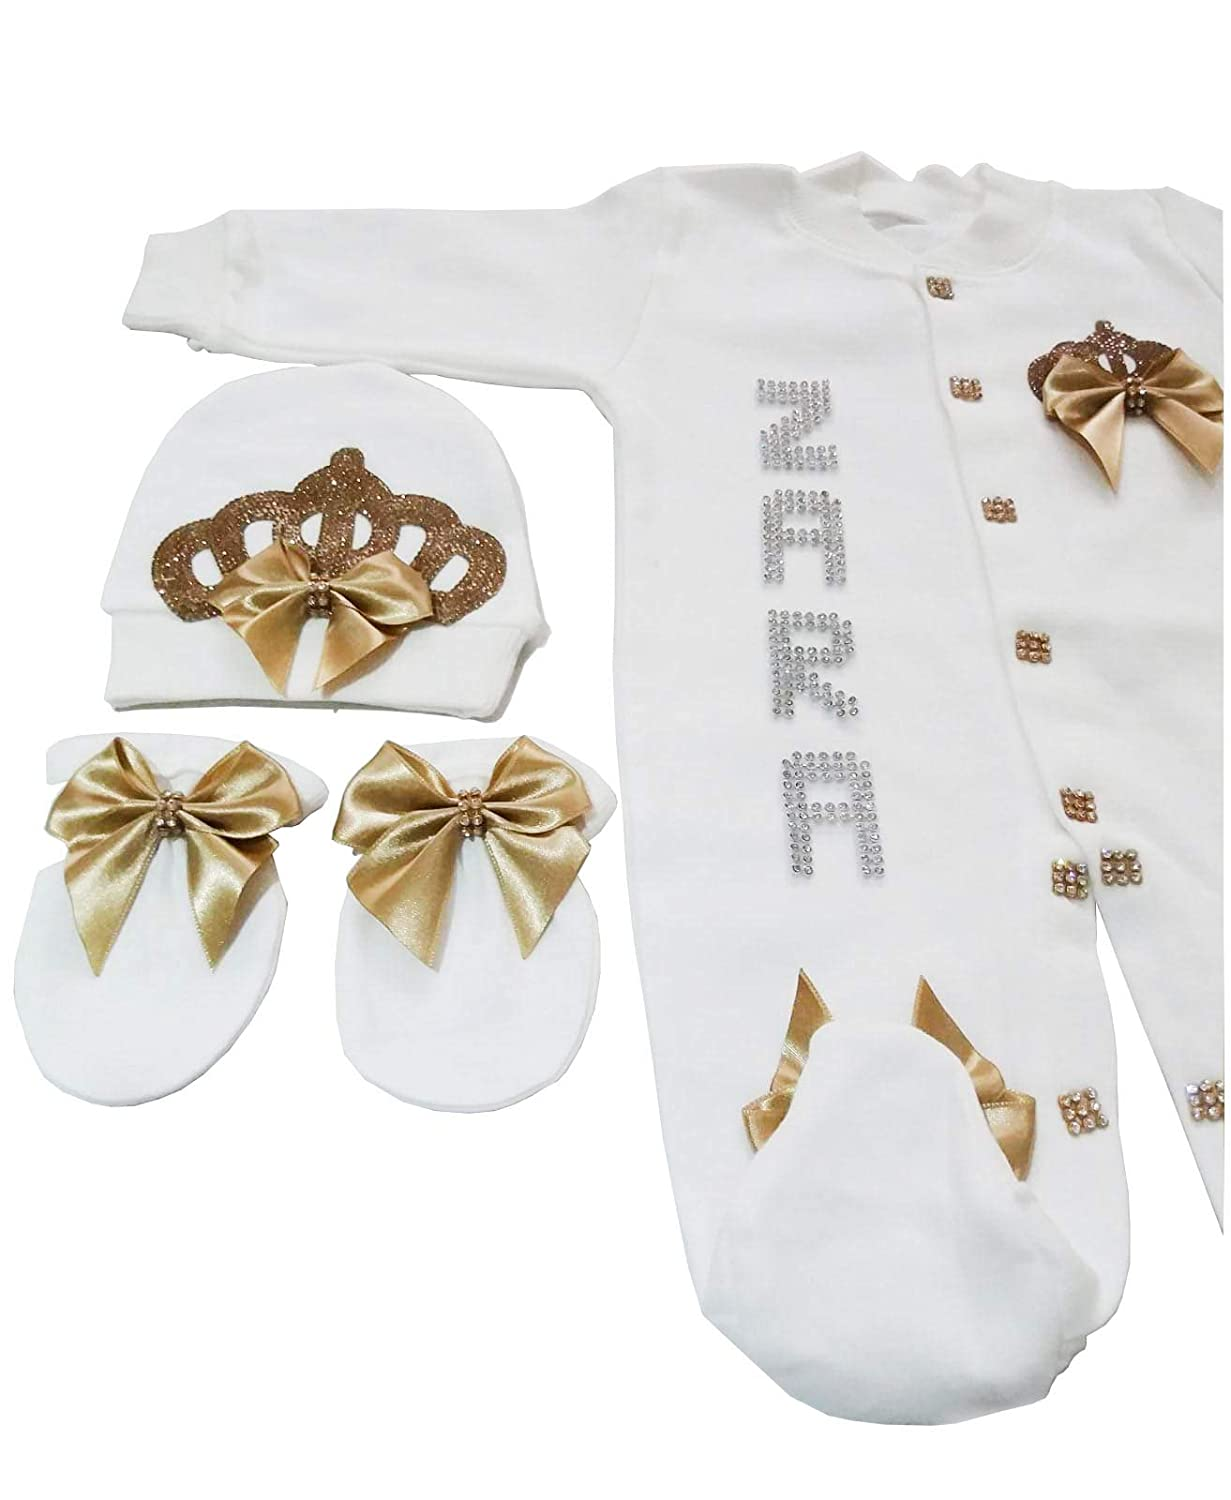 0-3 and 3-6 Months Newborn Baby Girl Crown and Jewel Home Coming 3 Piece Romper Set